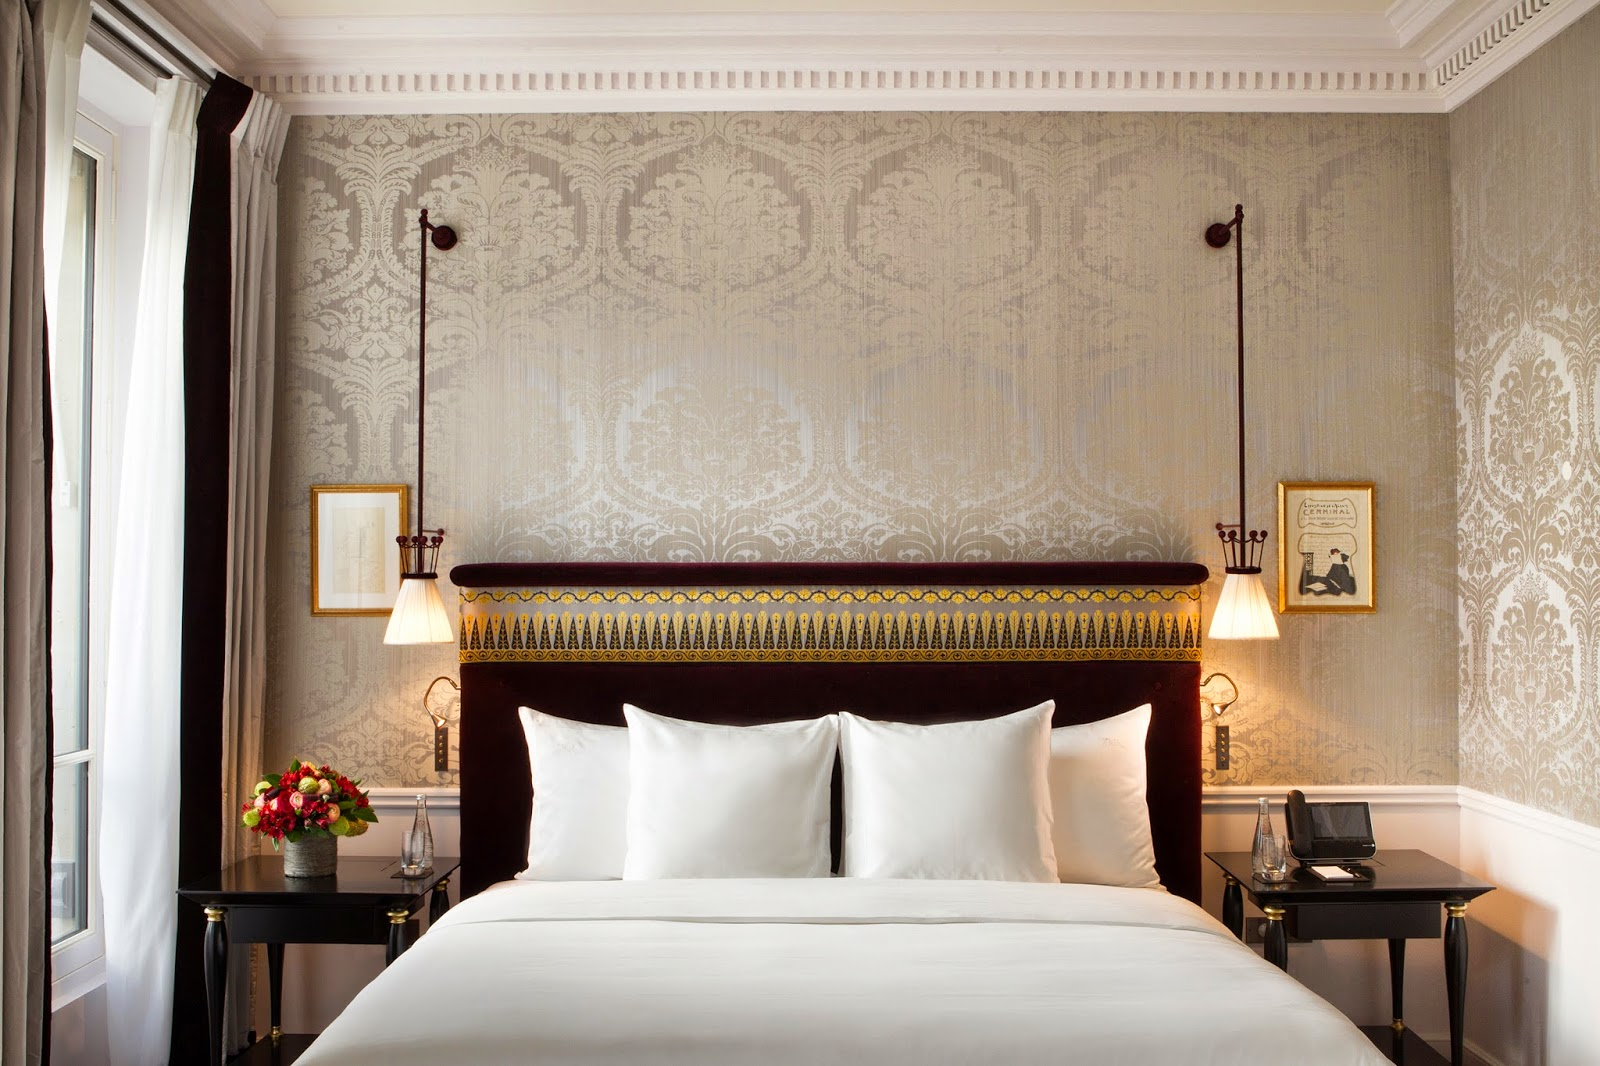 hotel reserve Hotel booking made easy expedia's hotel search of 321,000 hotels lets you find a hotel in your budget find the perfect hotel room for your next vacation.